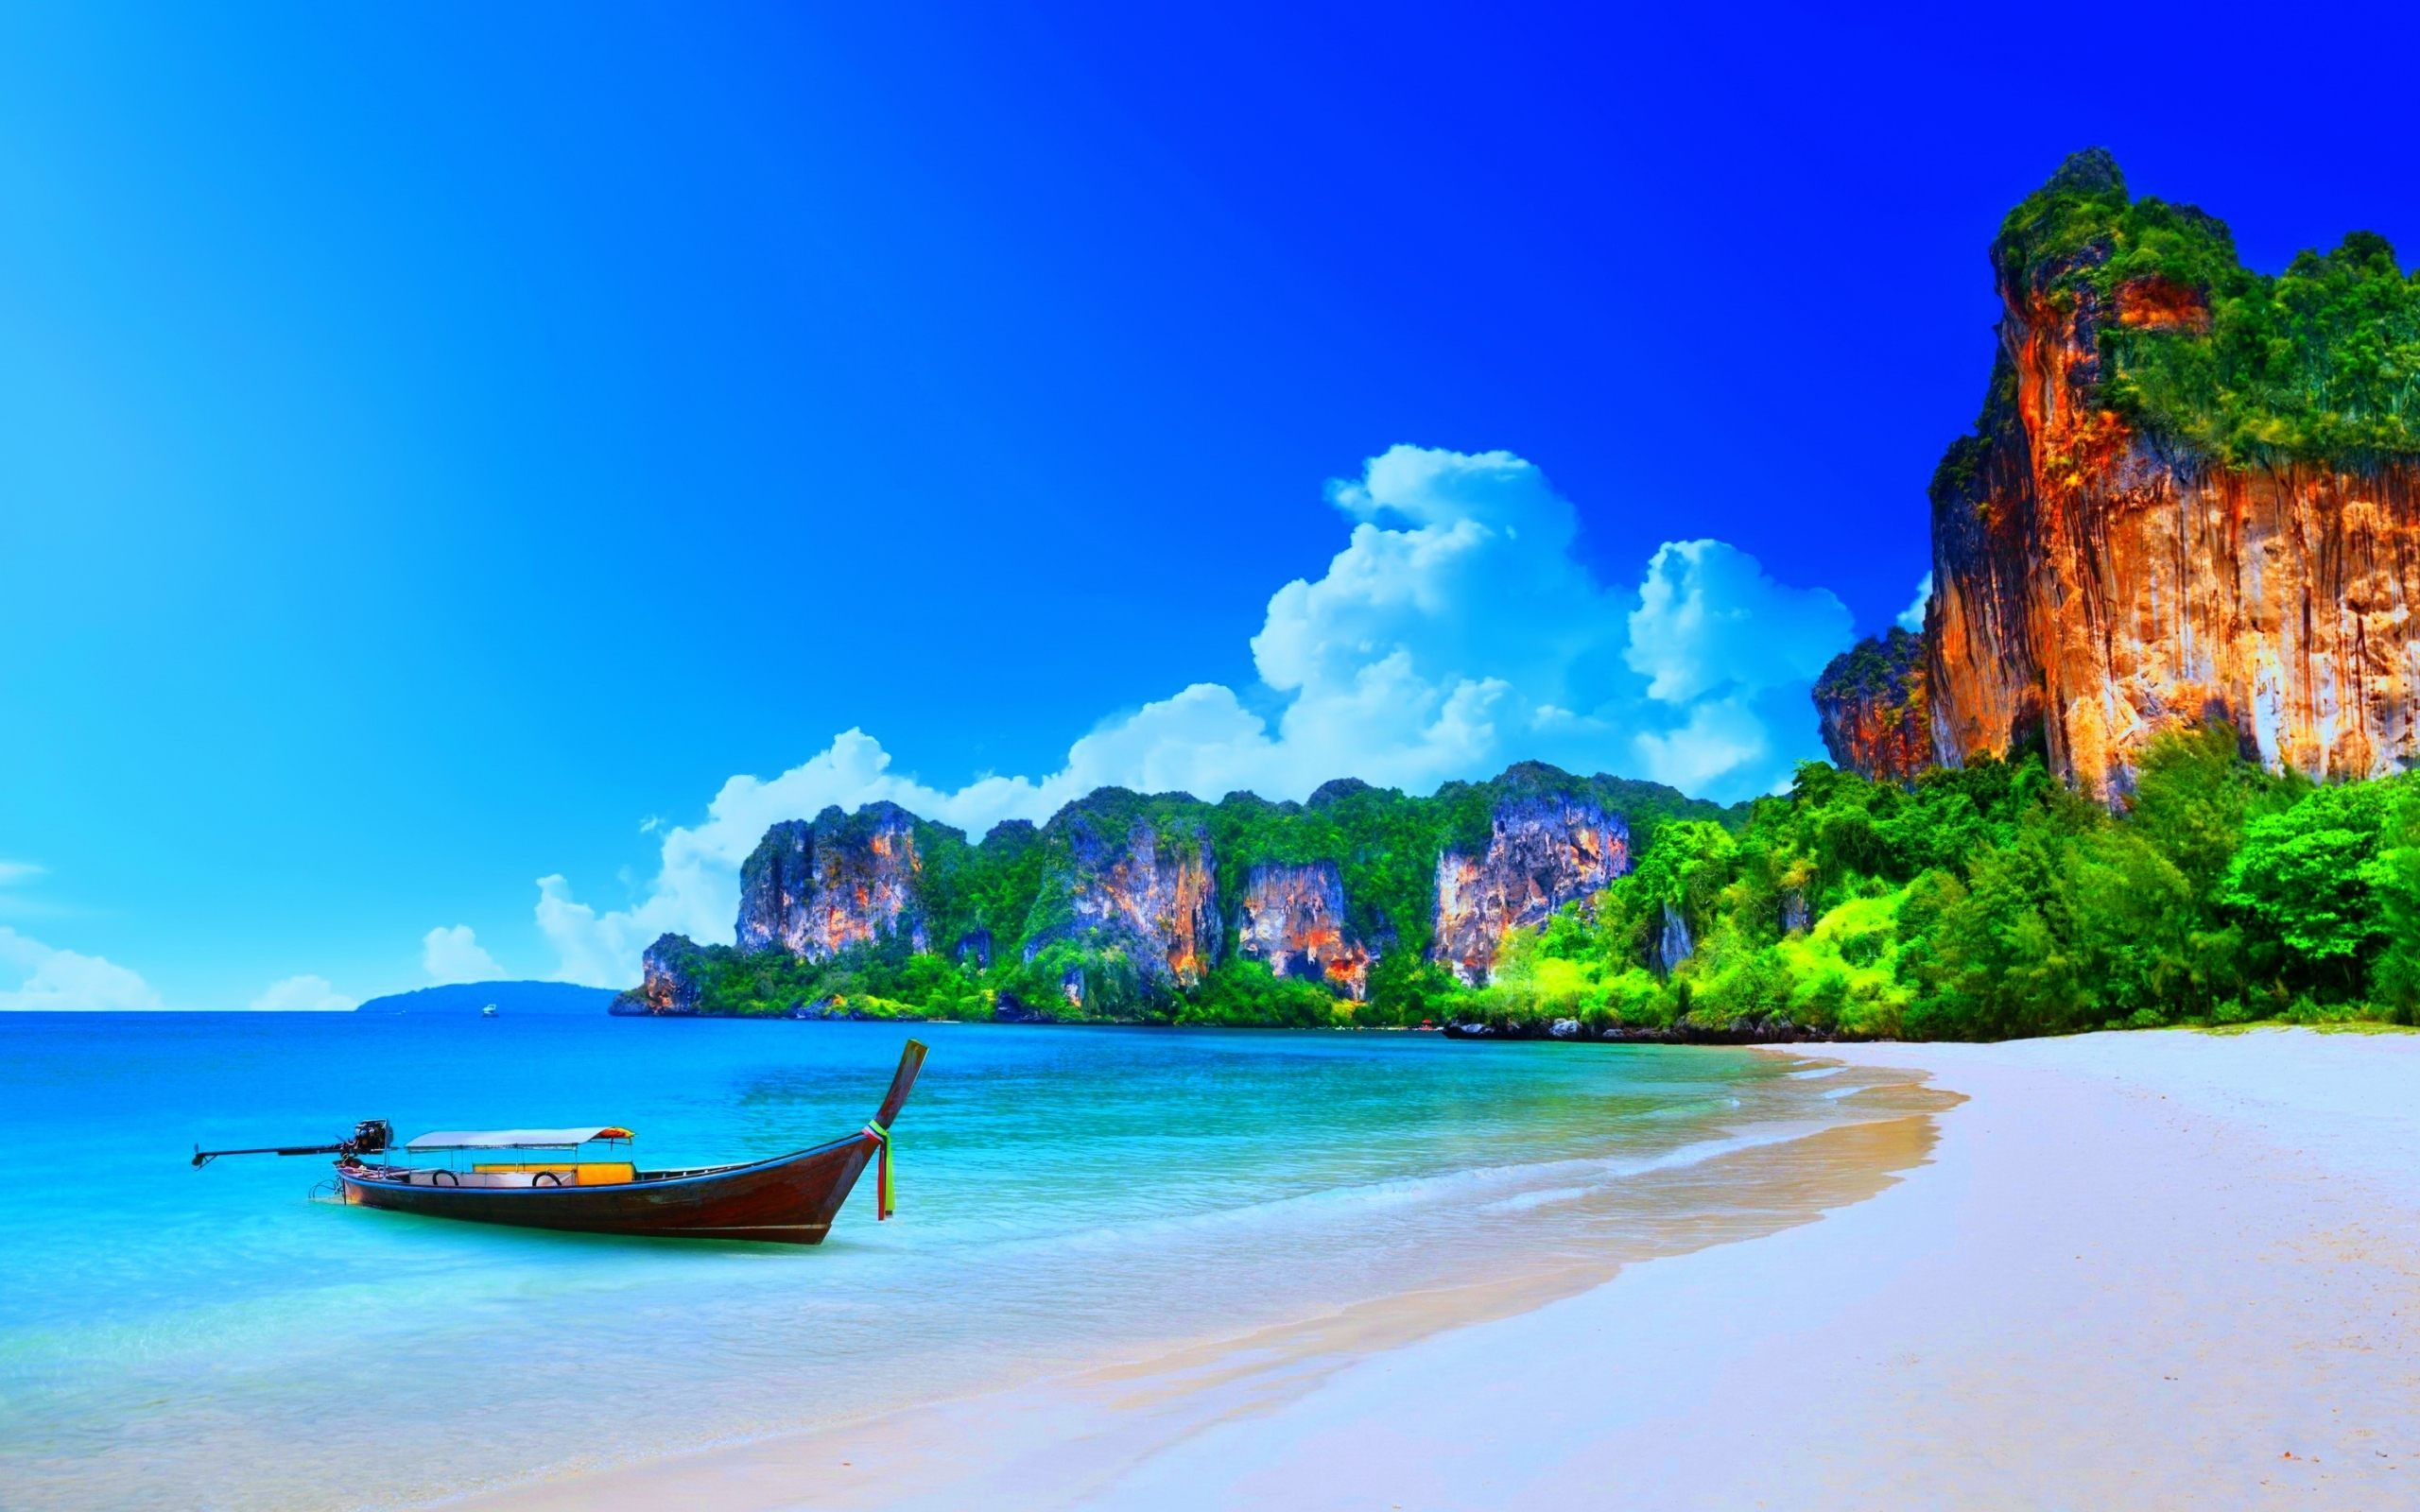 Thailand Wallpapers - Top Free Thailand Backgrounds